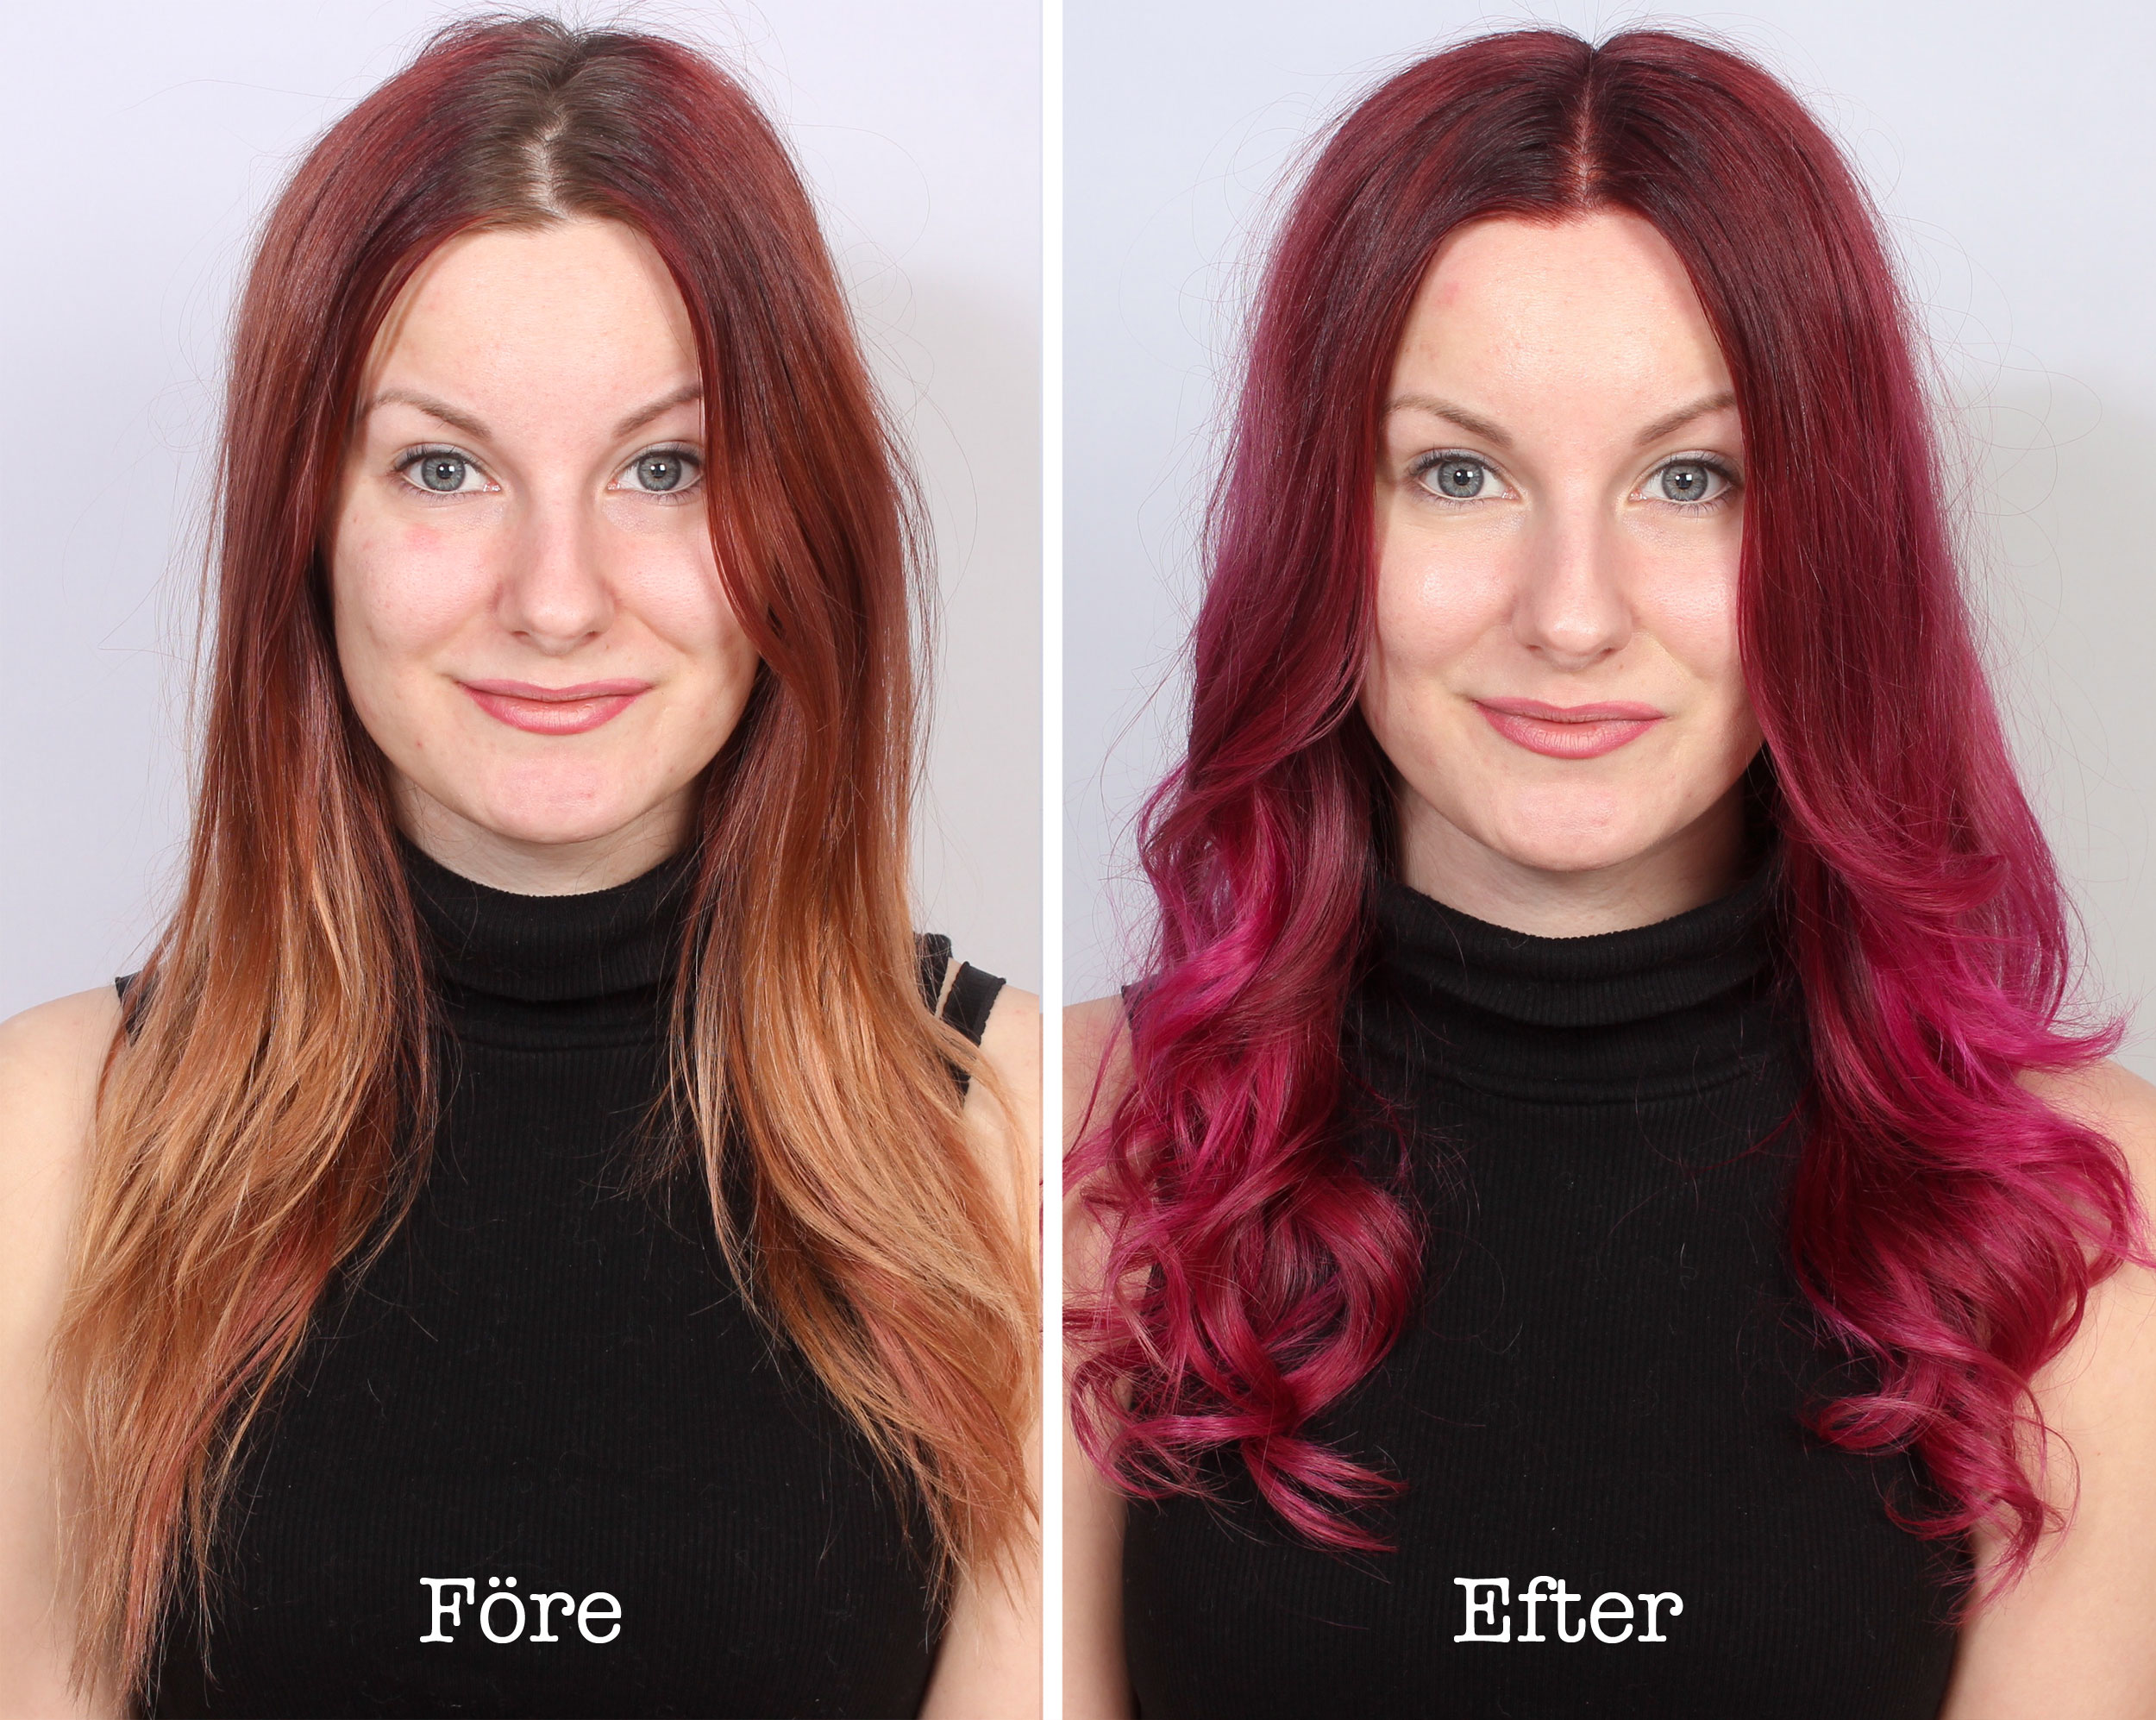 dye-hair-pink-before-after